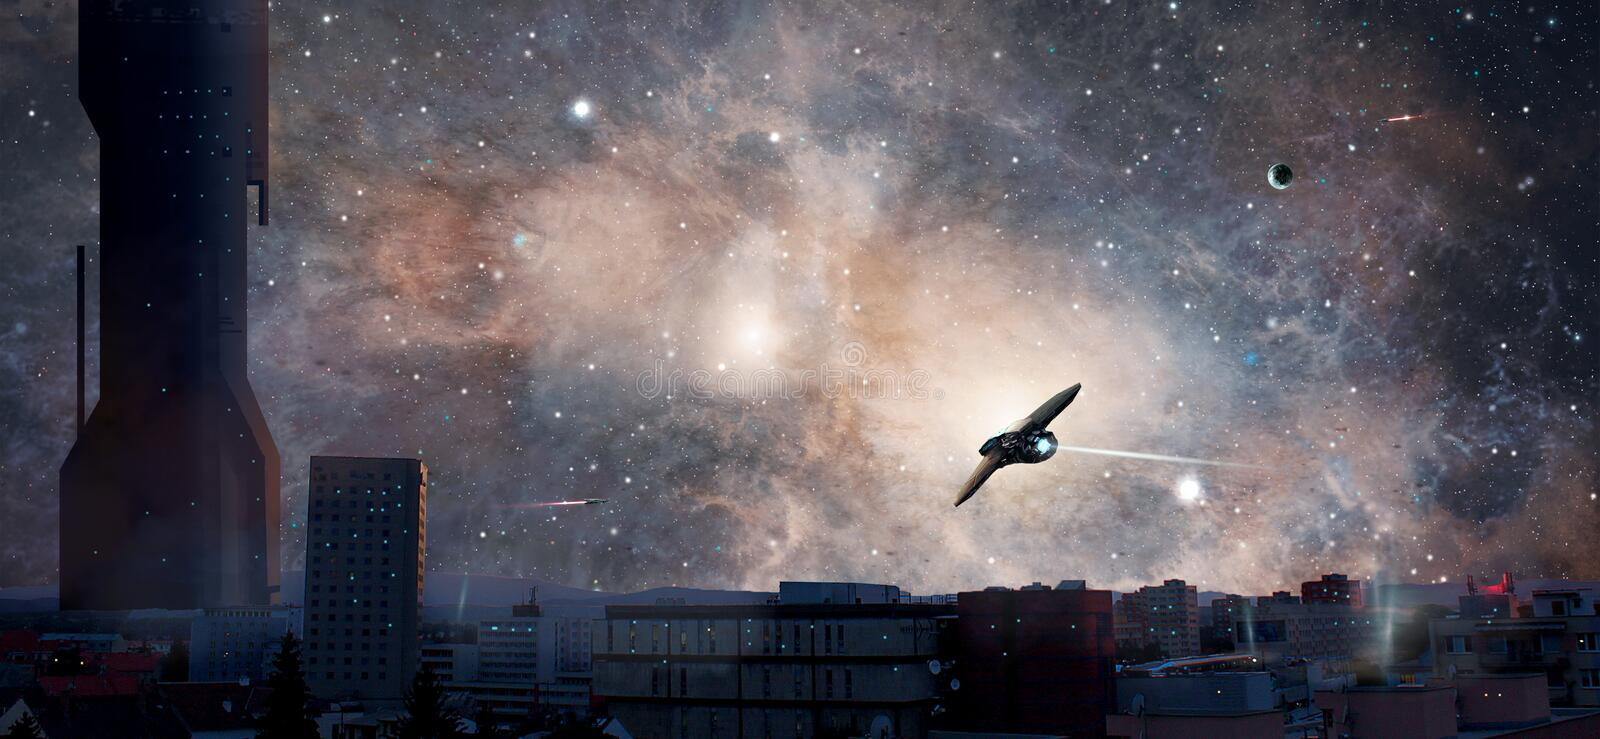 Sci-fi city with planet, nebula and spaceships, Elements furnish. Ed by NASA. 3D rendering. Illustration vector illustration